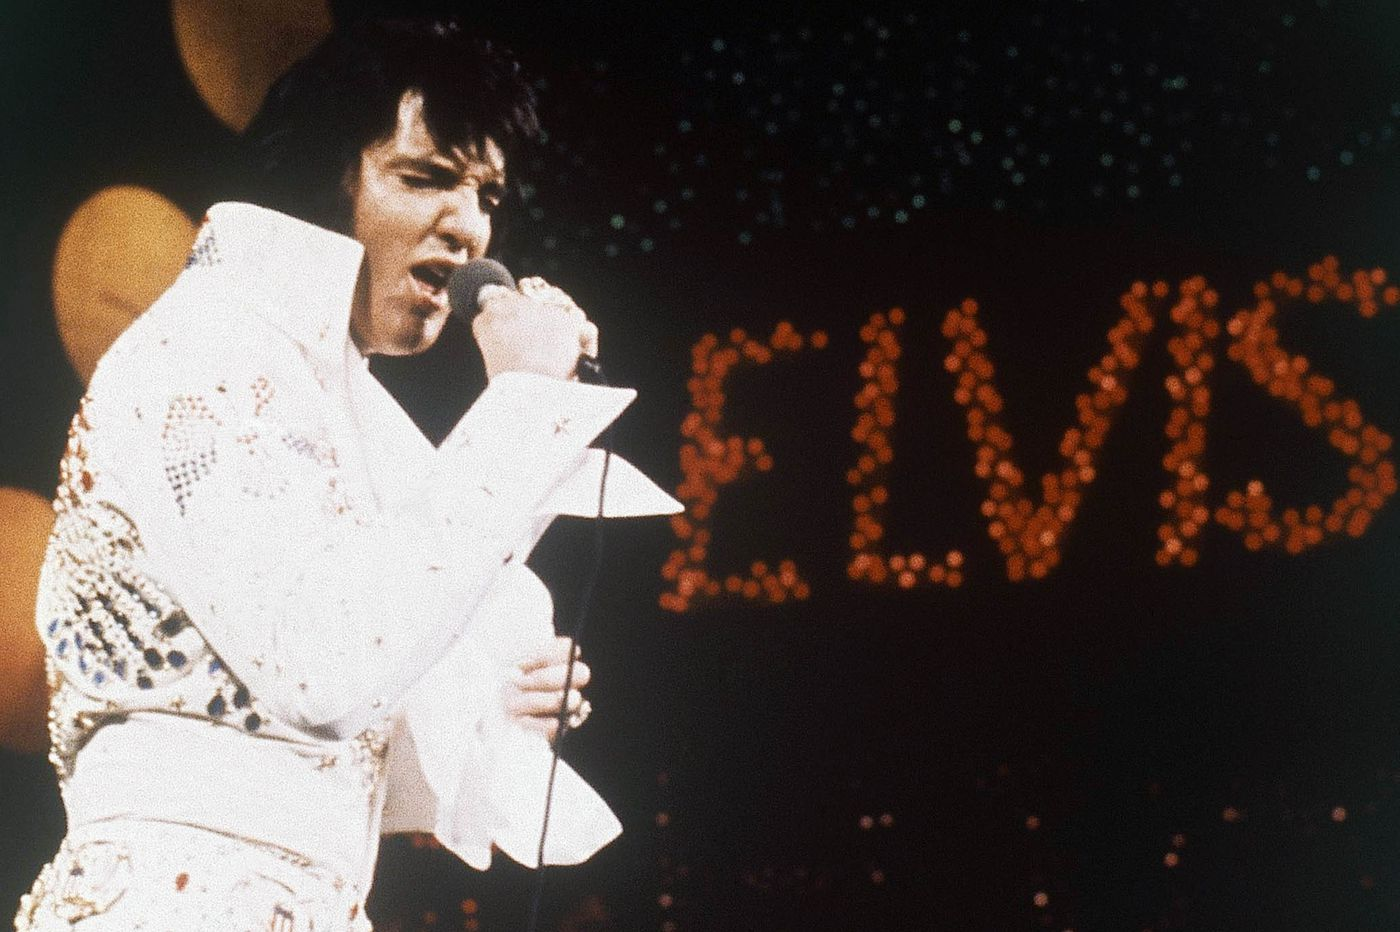 Annual Elvis Festival draws fans to Nashville for music and more